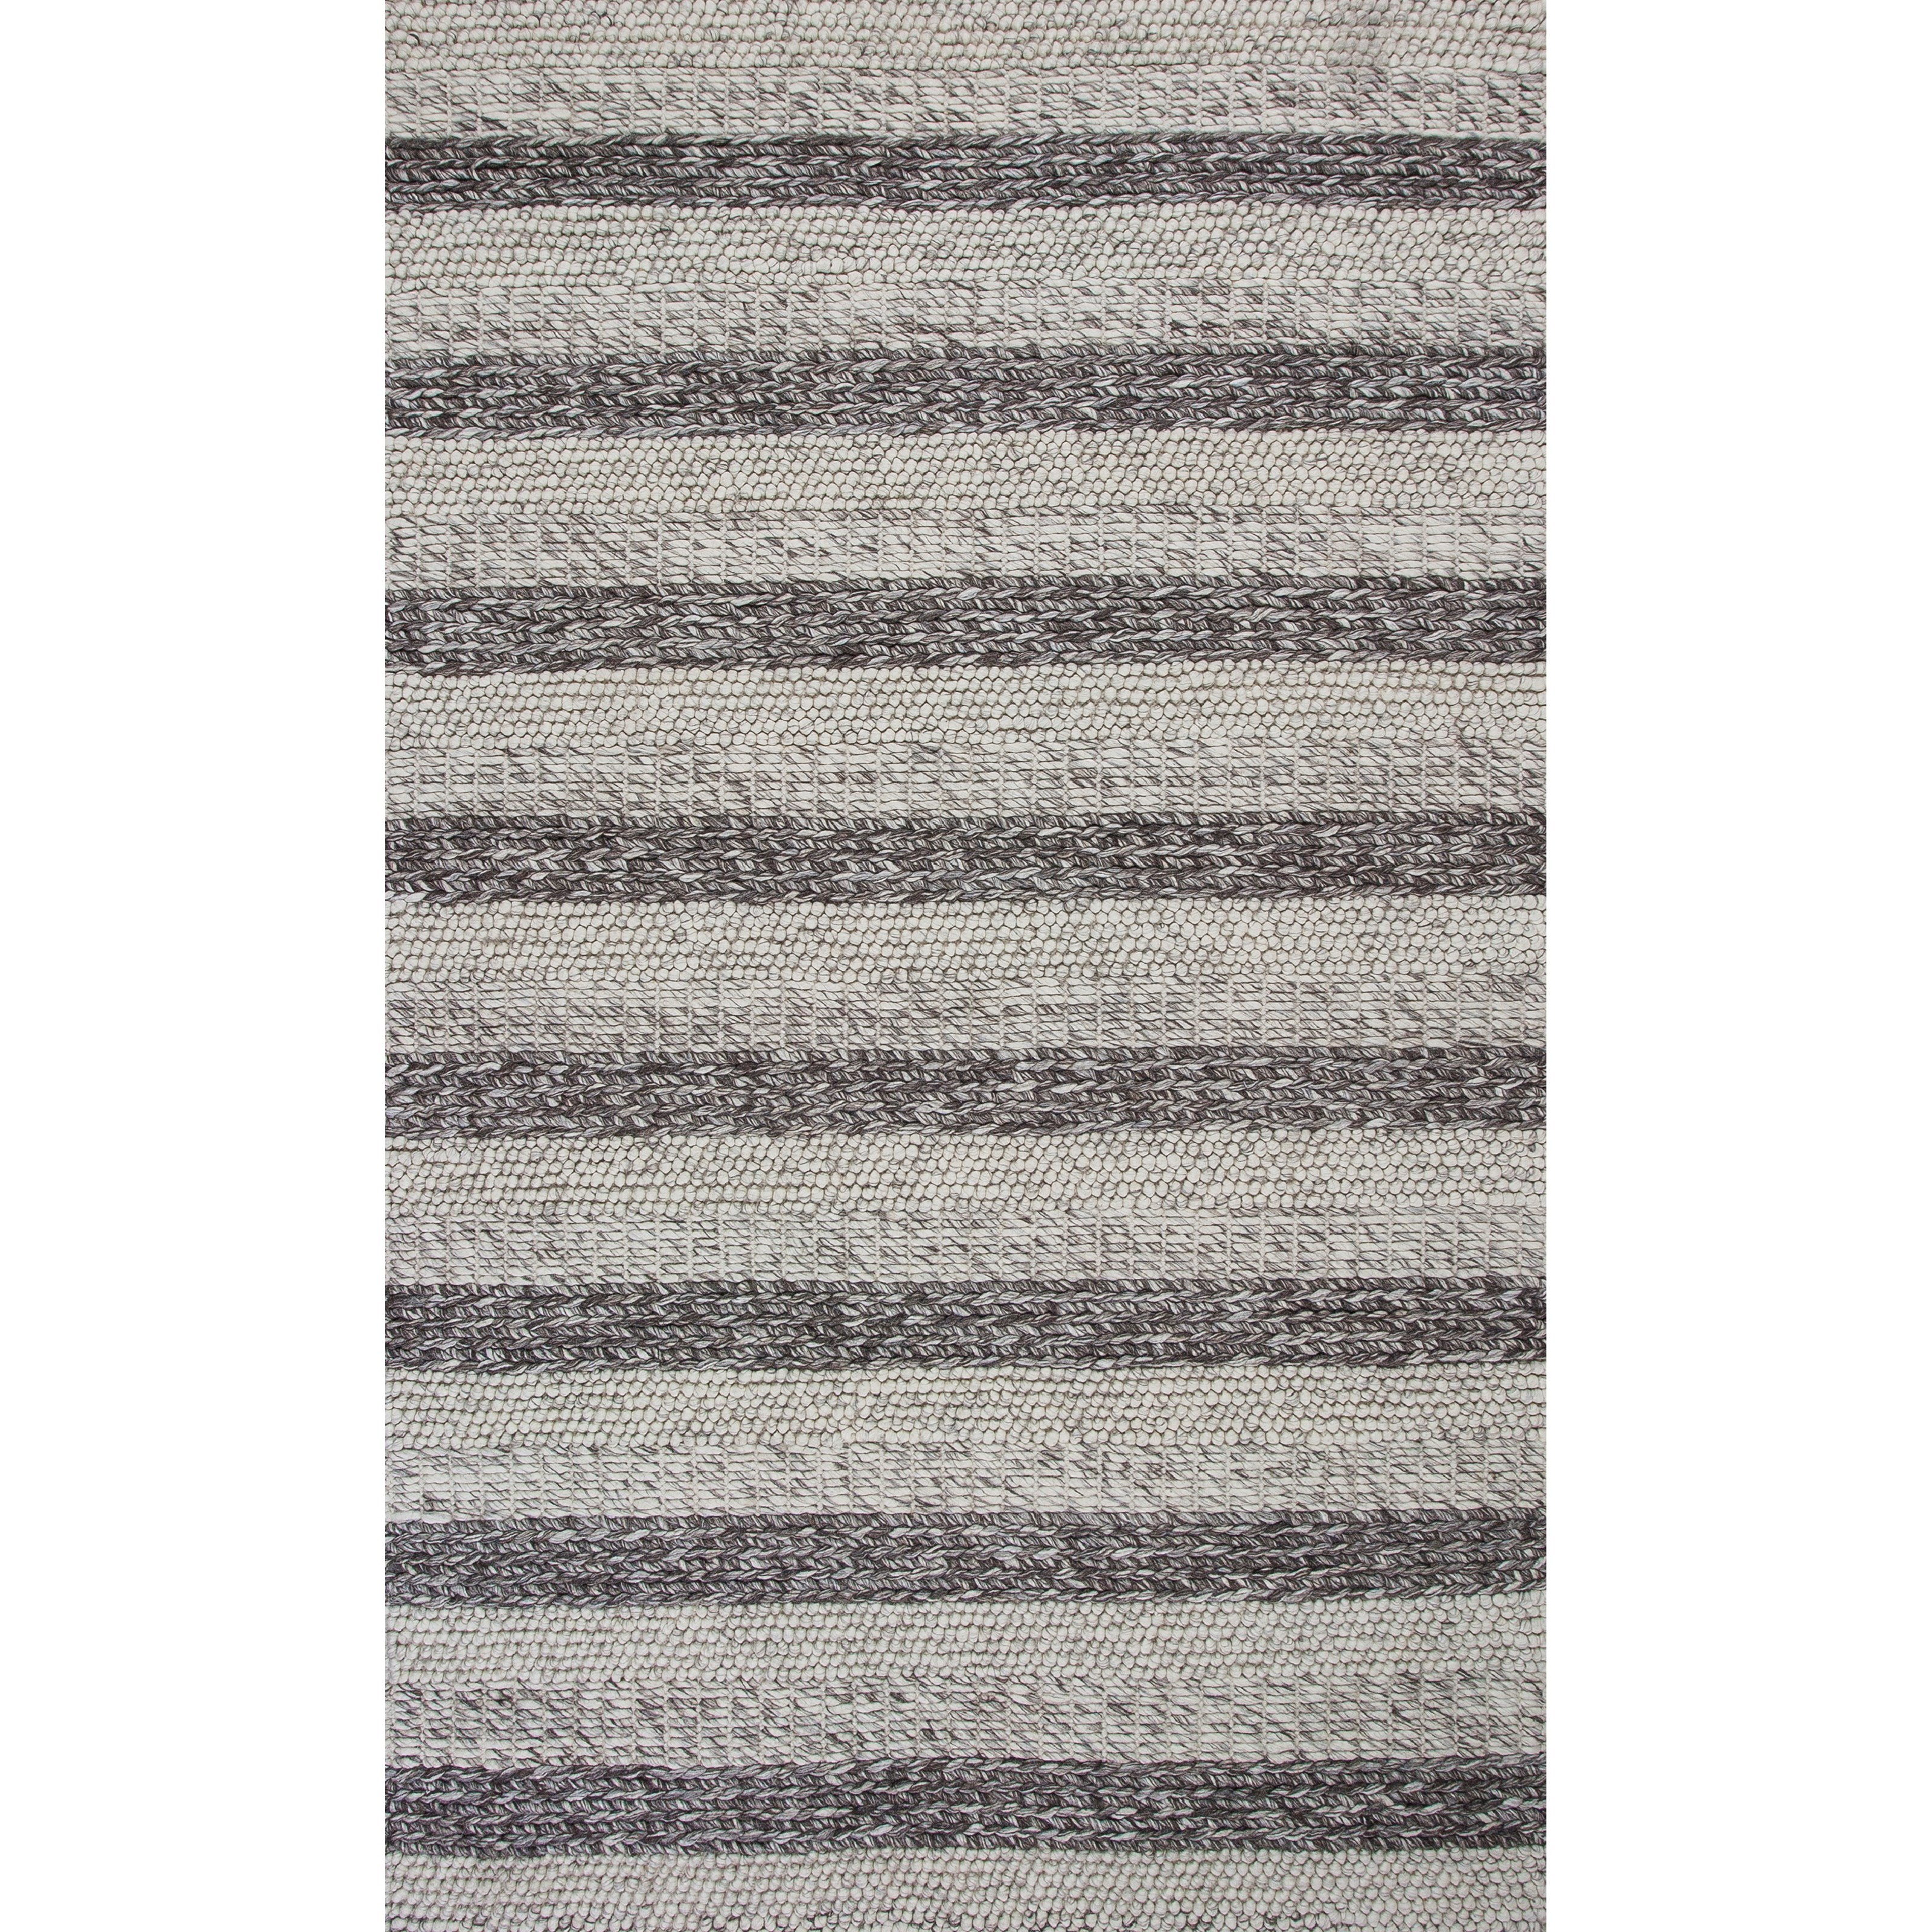 Cortico 13' X 9' Area Rug by Kas at Zak's Home